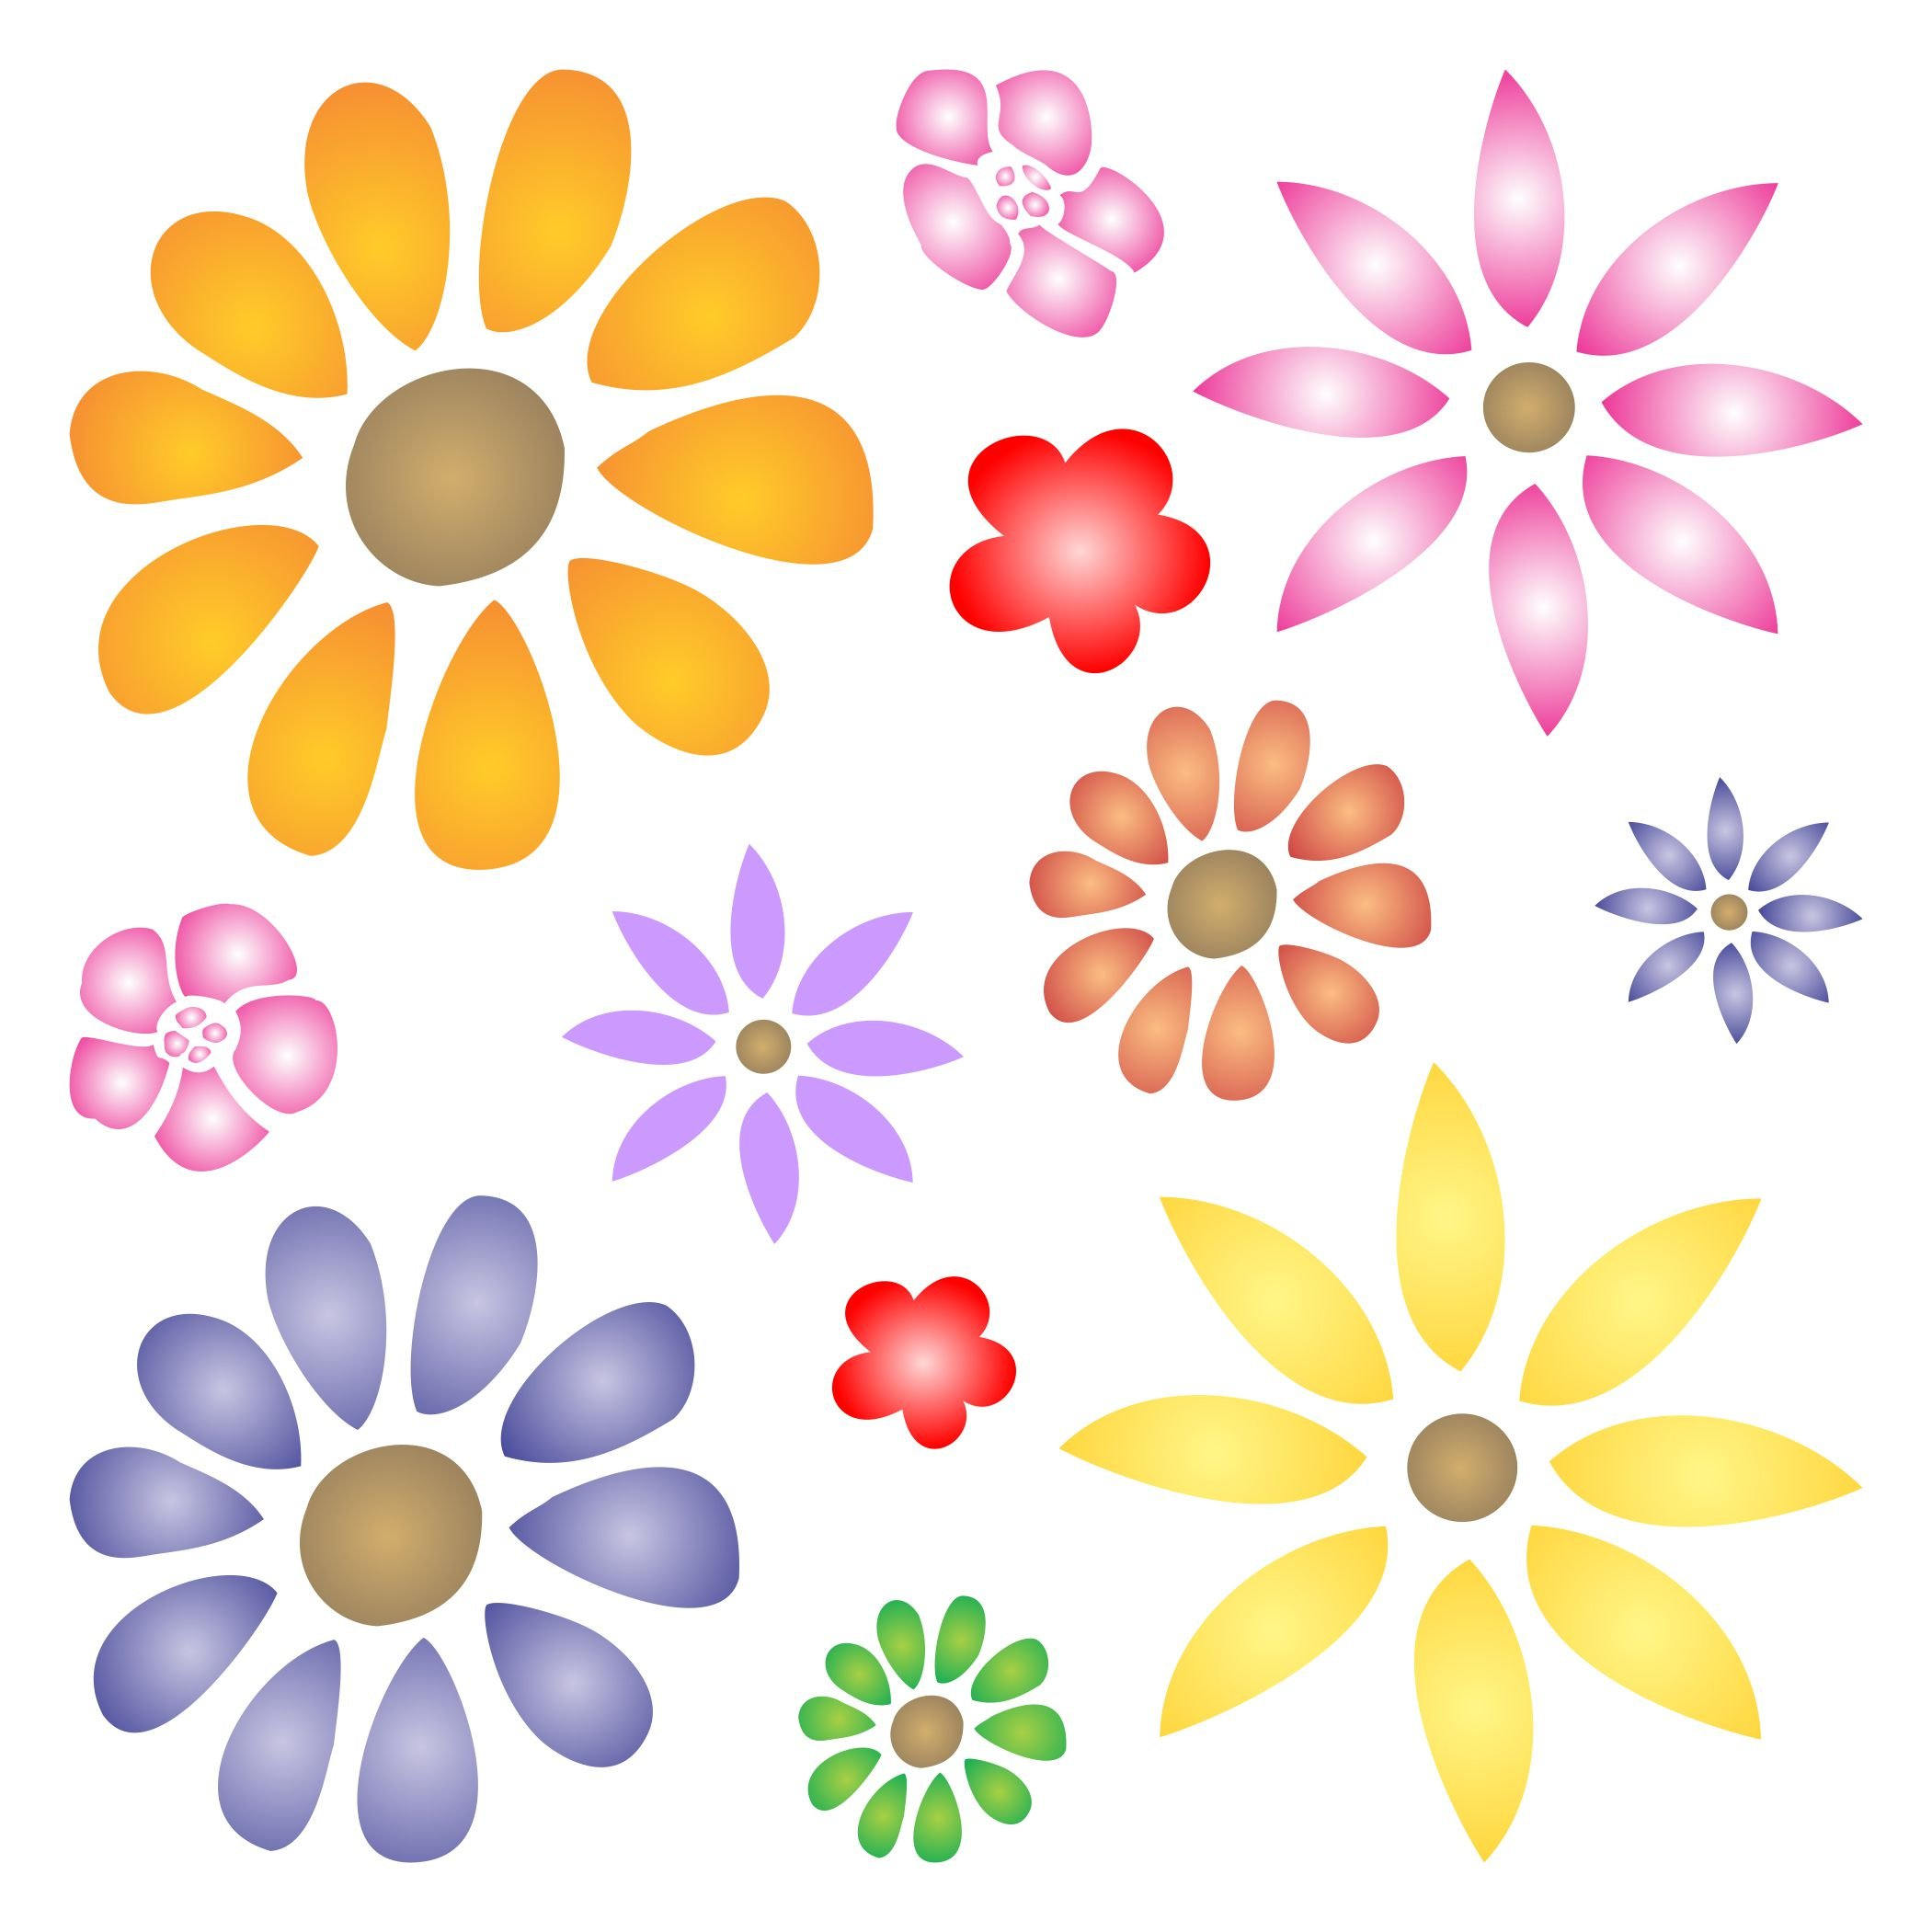 Floors Fabric Flower Power Stencil size 9w x 9h Reusable Stencils for Painting Best Quality Scrapbooking Valentines Ideas Use on Walls